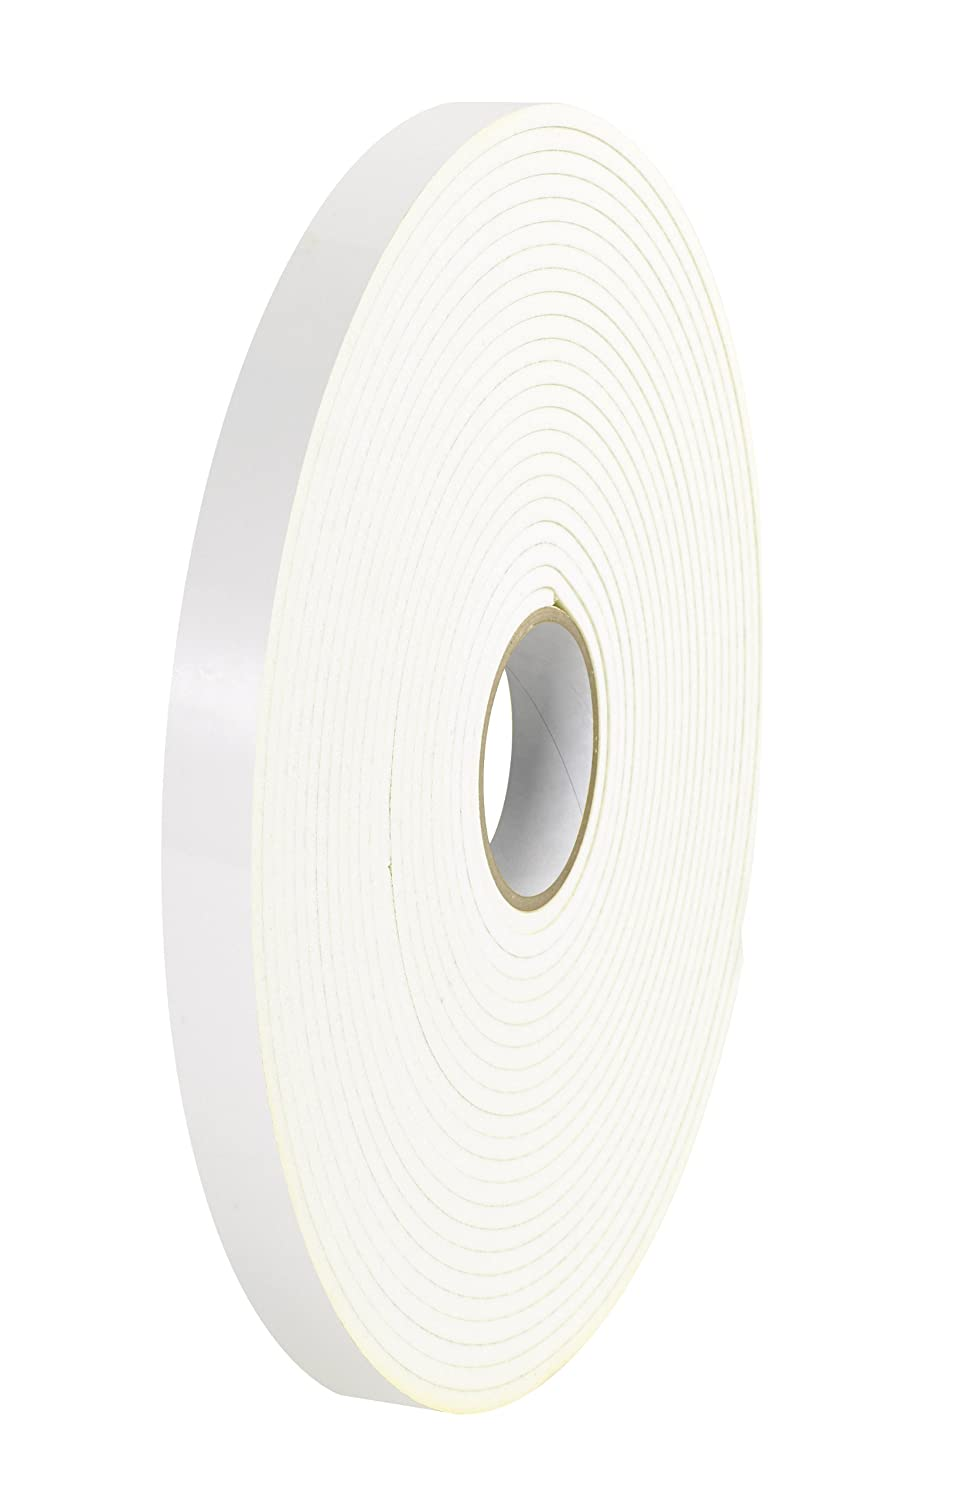 Tape Logic T959116 Polyethylene Double Sided Foam Tape, 1/16 Thick, 36 yds Length x 2 Width, White (Case of 6) by Tape Logic B00DYB0JY4